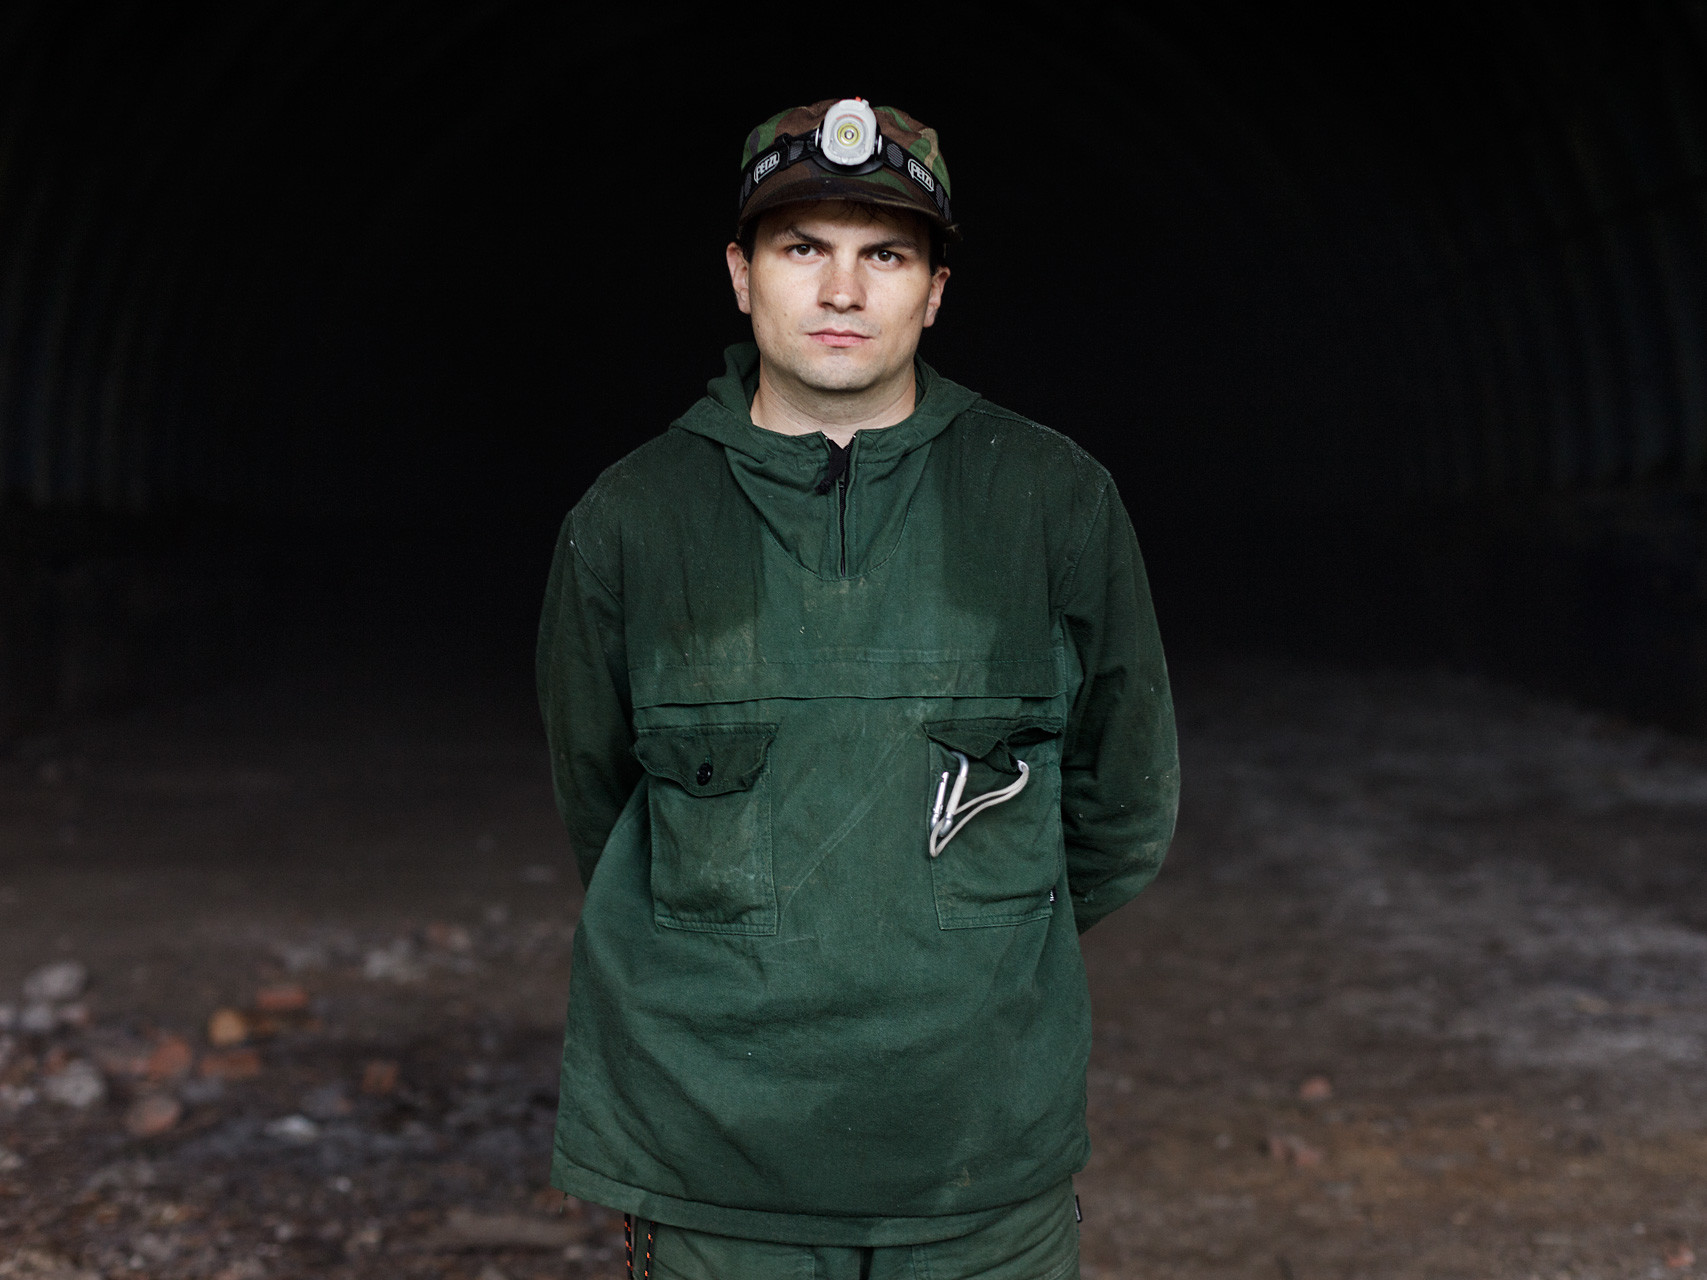 timo-stammberger-photography-russia-launch-pad-tunnel-cold-war-missiles-exploring-portrait